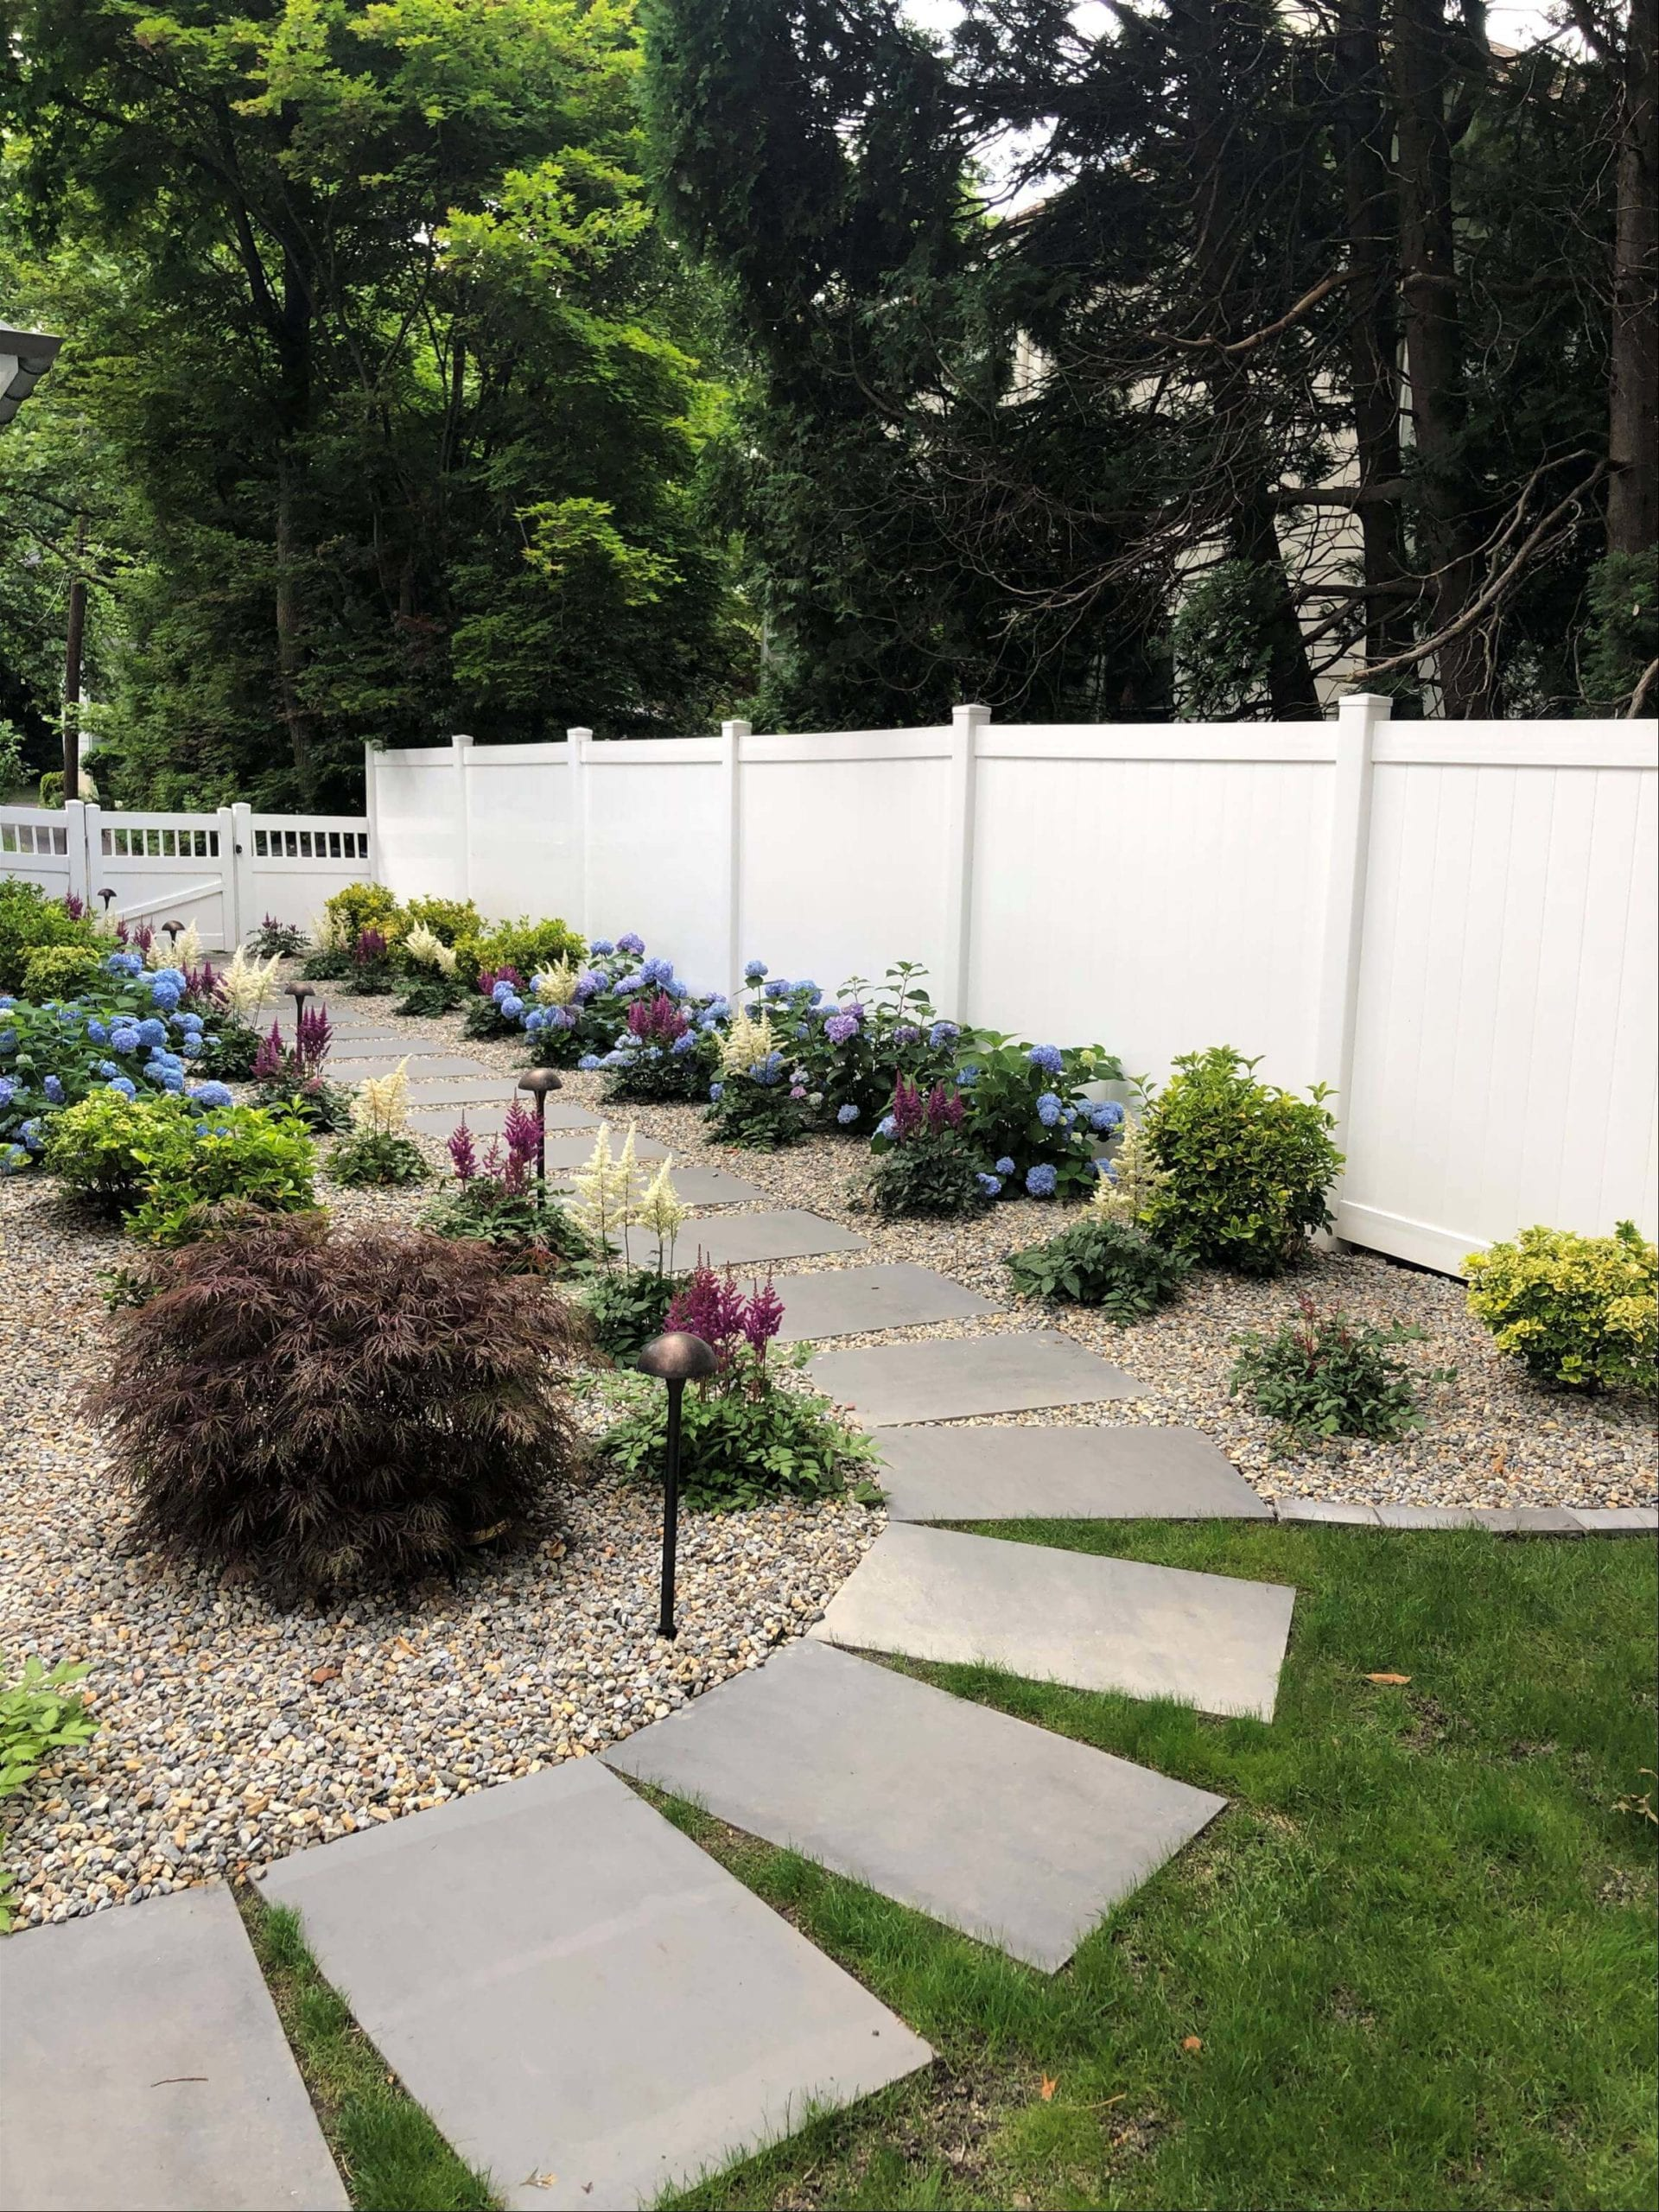 Warren Nj Landscape Design Services That Are Second To None